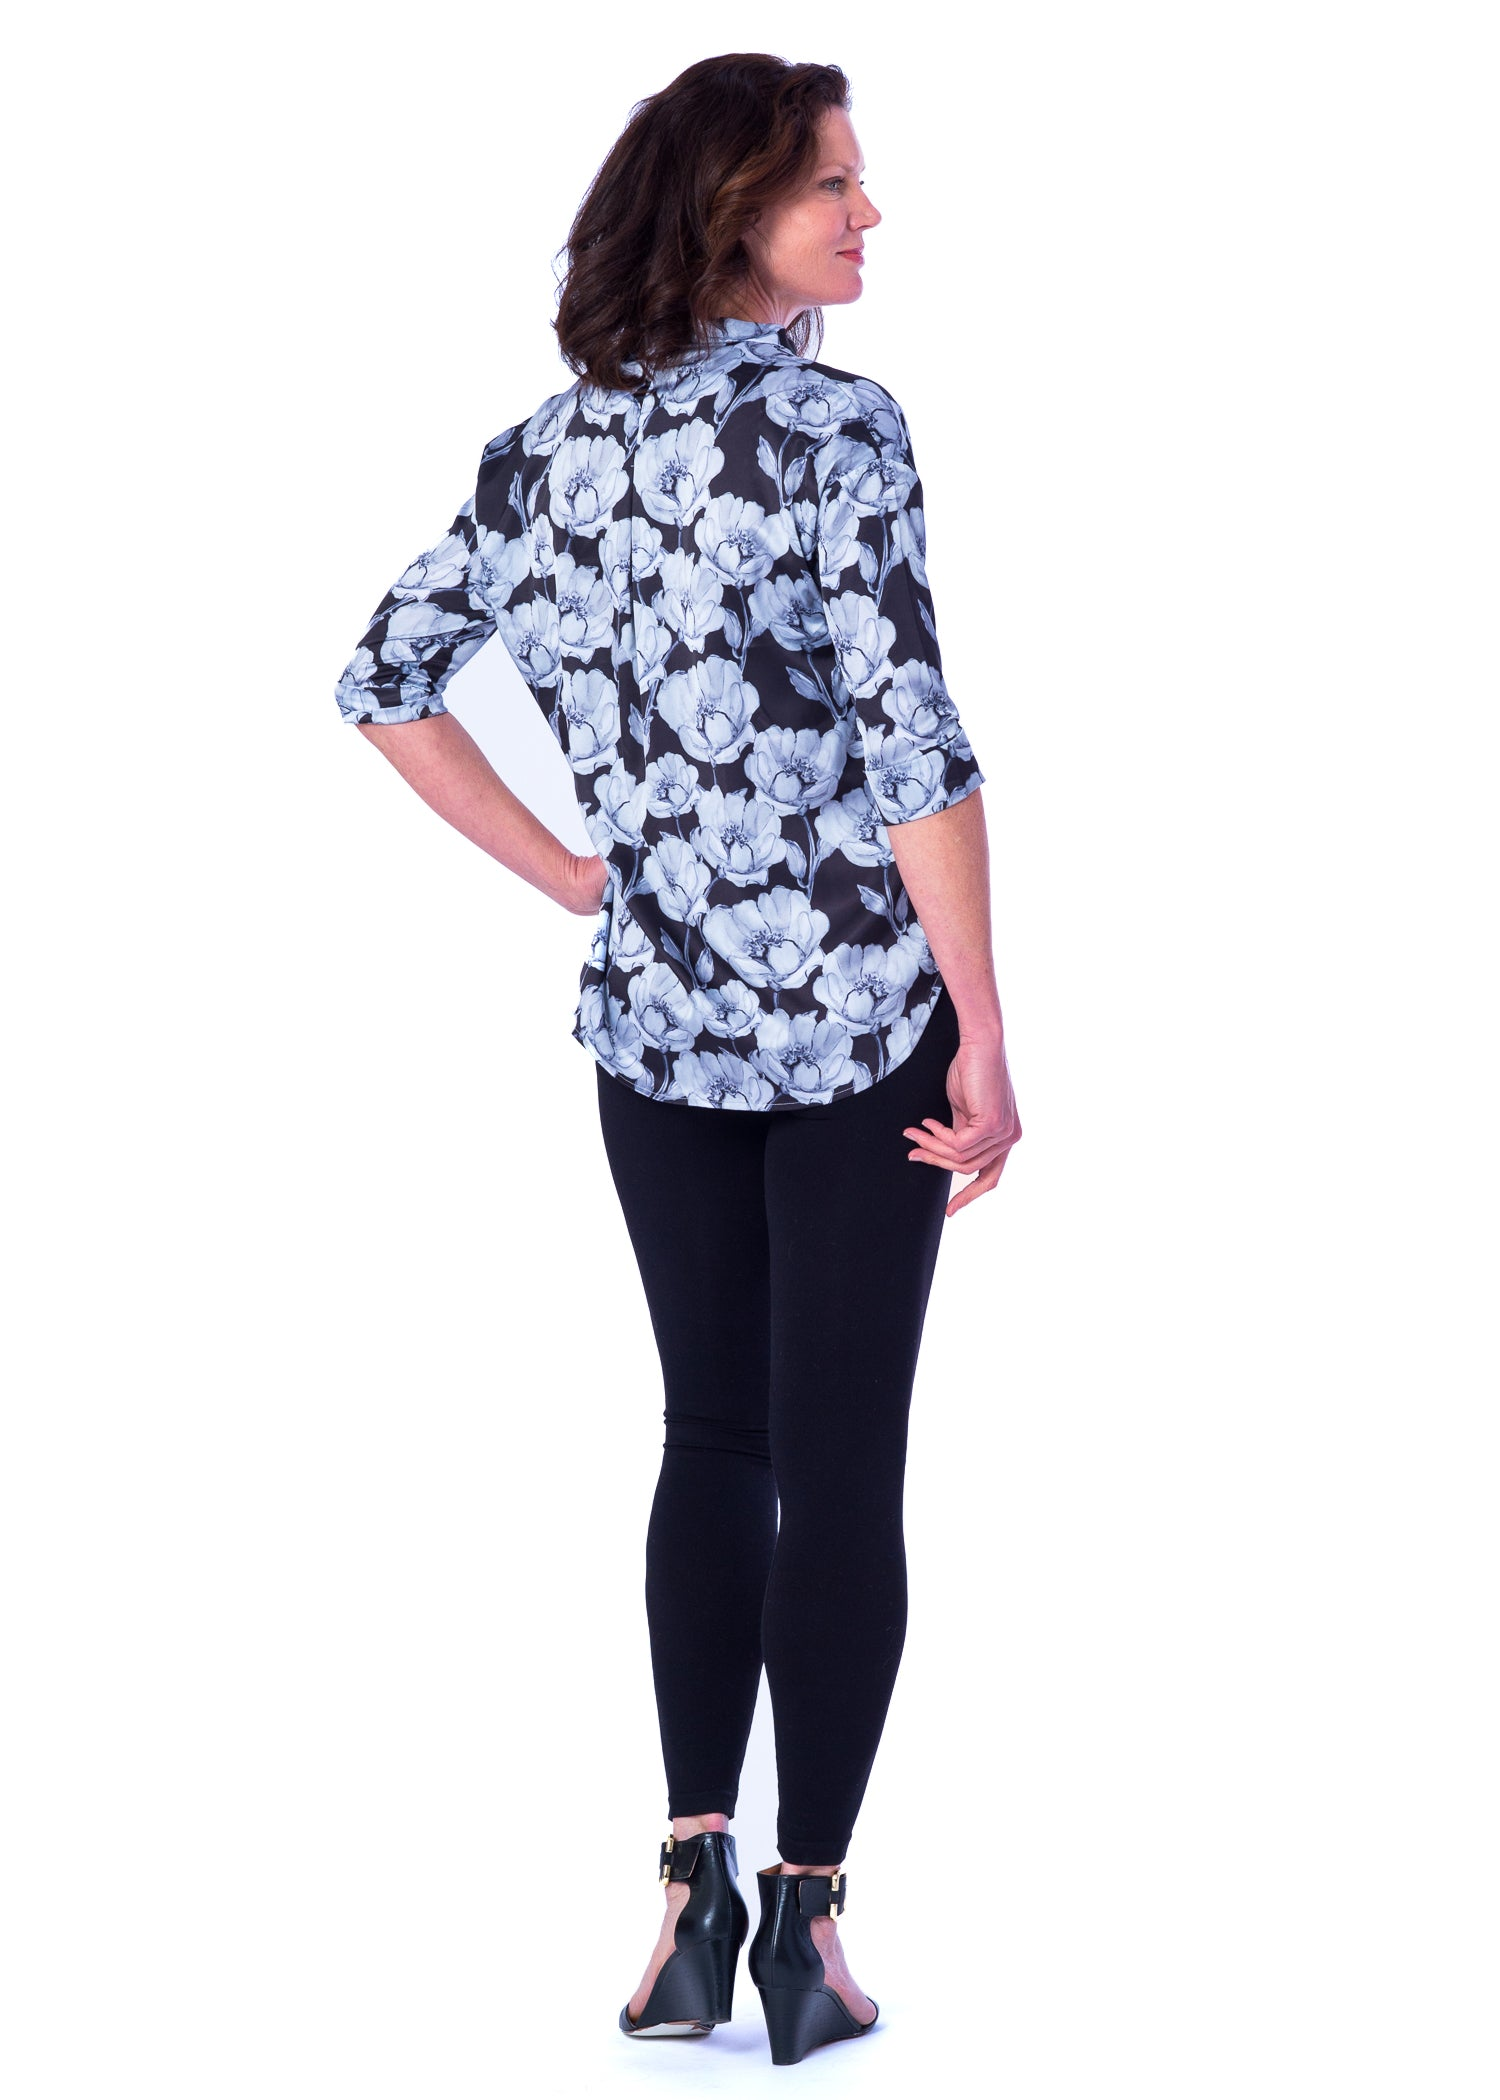 Heather Mandarin Collar Blouse in Grey Floral - Elizabeth Ackerman New York